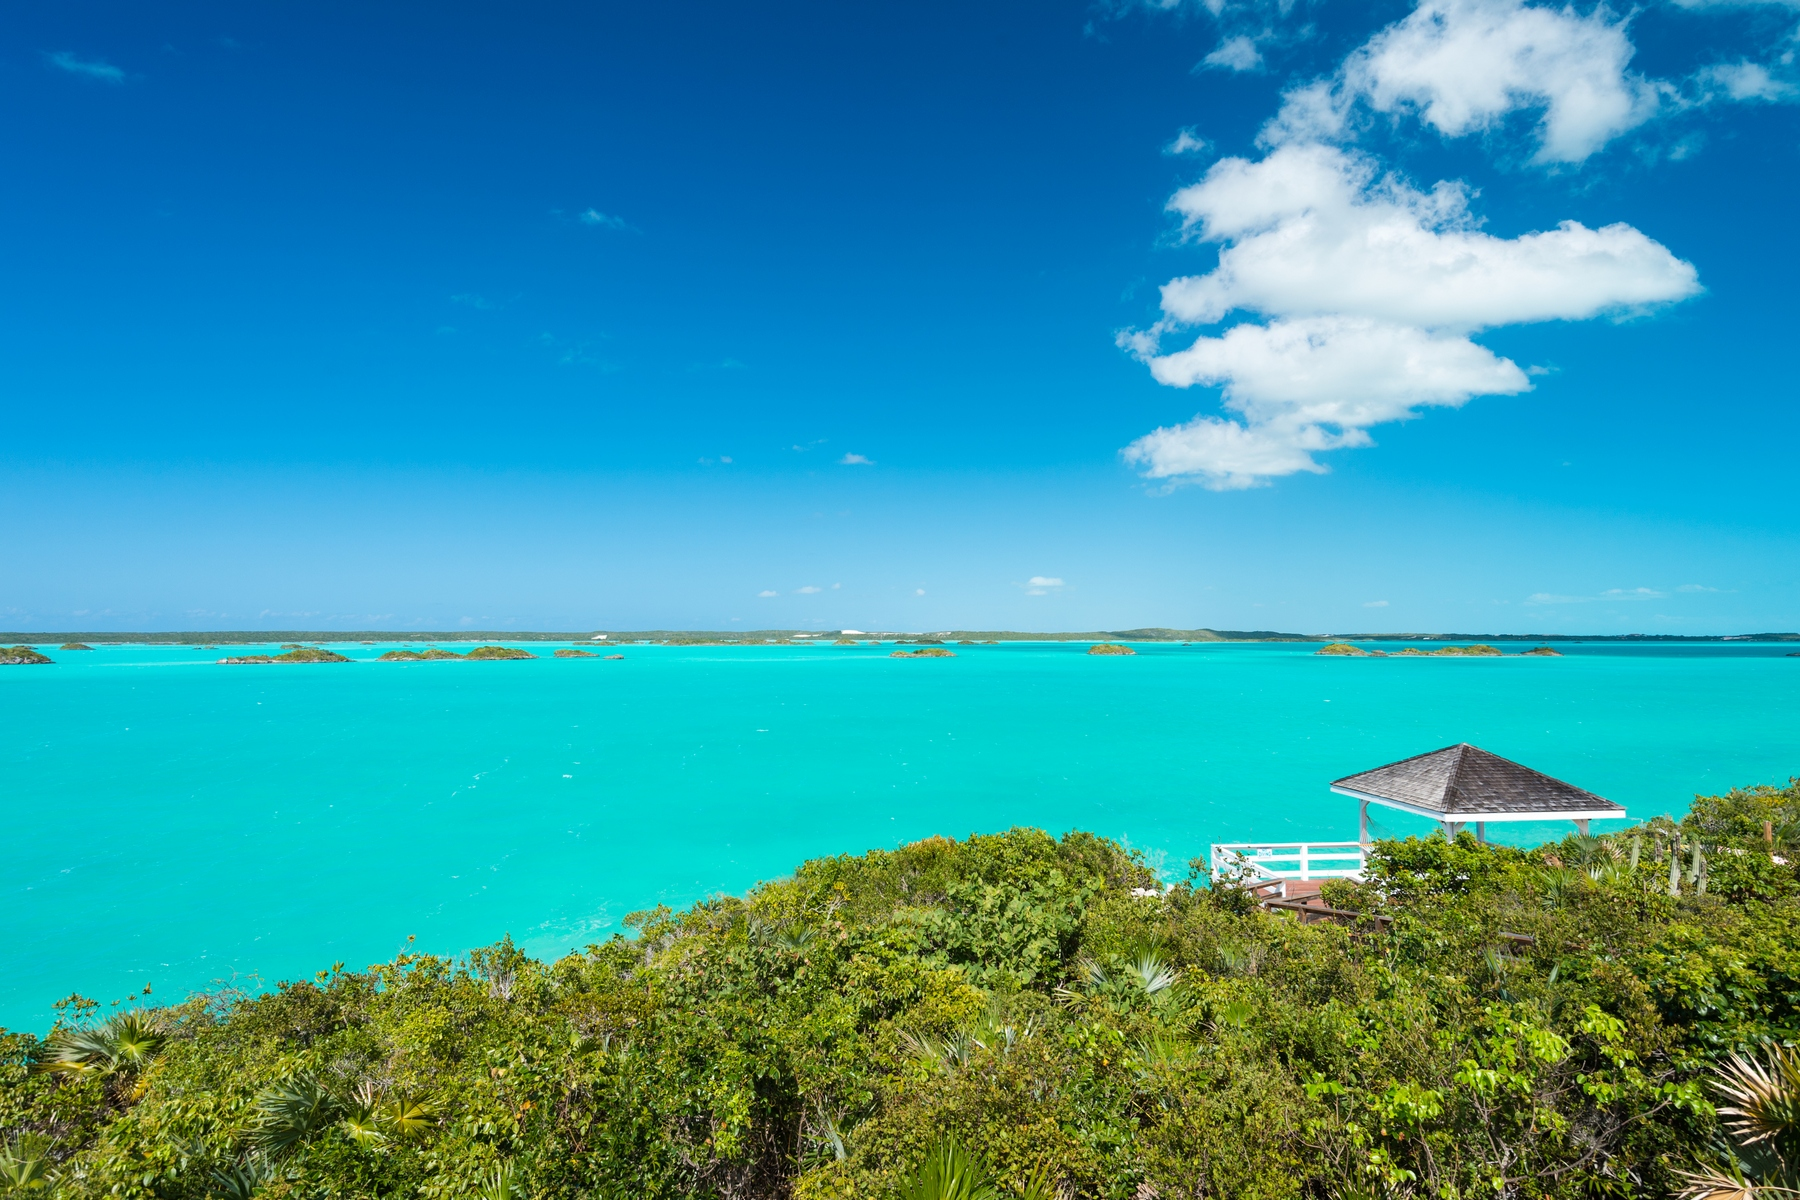 Single Family Home for Sale at Aqua View Villa Waterfront Chalk Sound, Providenciales, TCI Turks And Caicos Islands